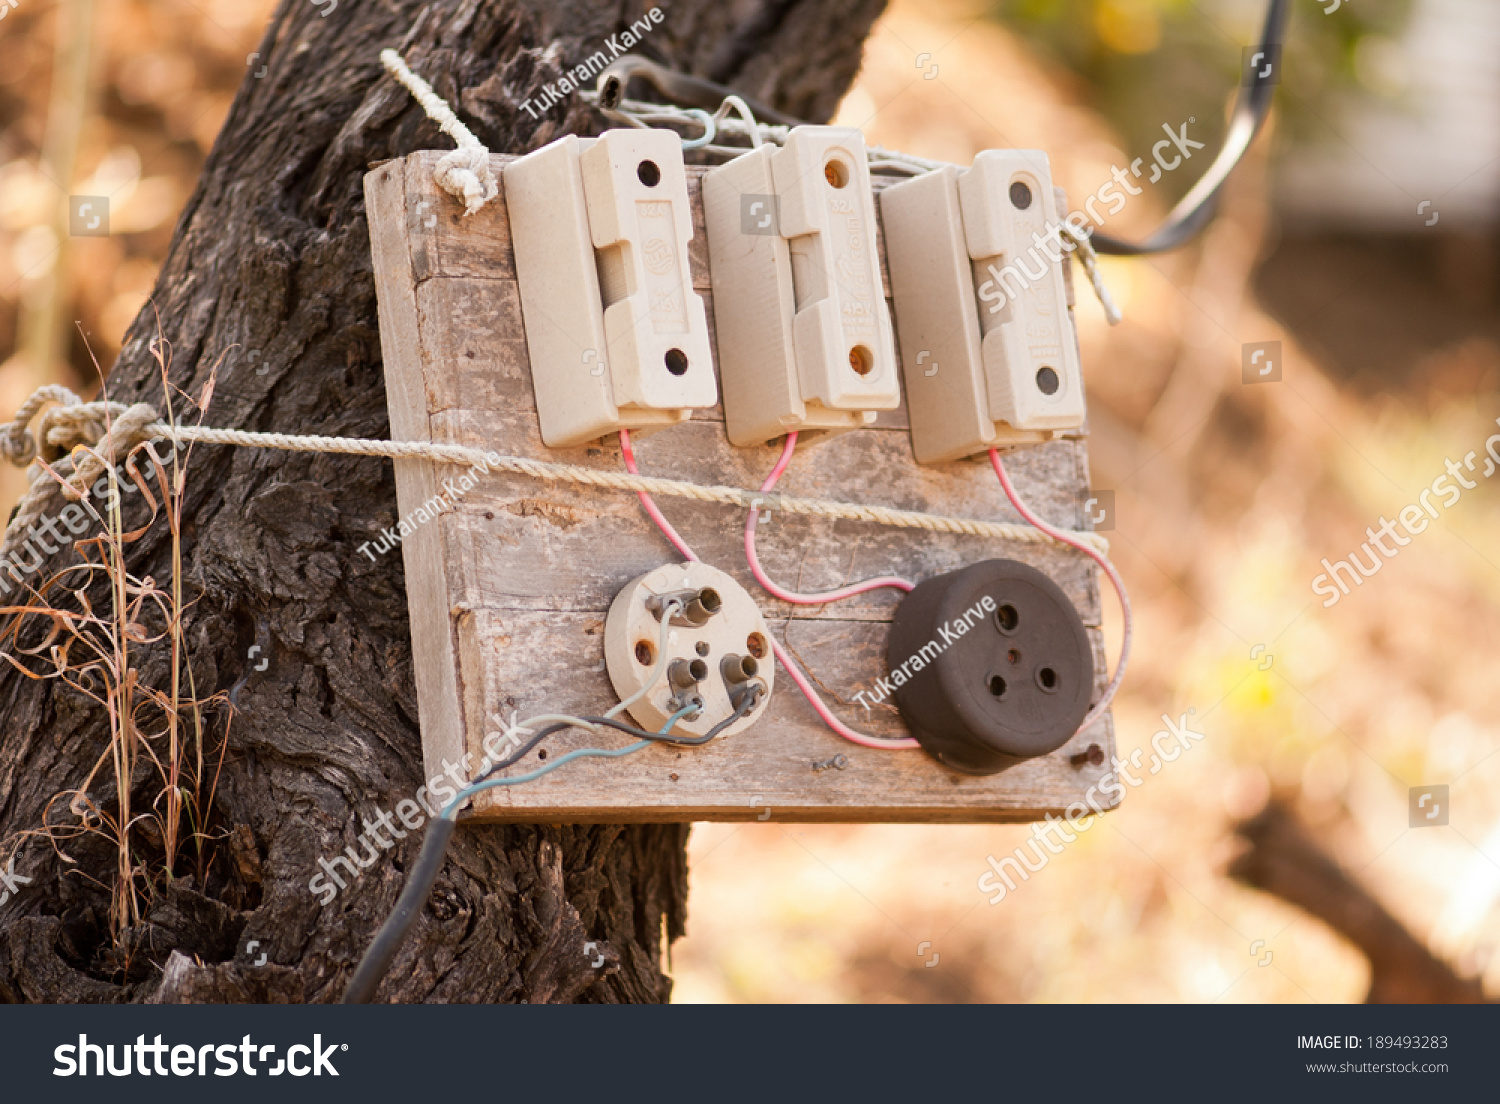 old electric fuse box on tree maharashtra south east asia save to a lightbox